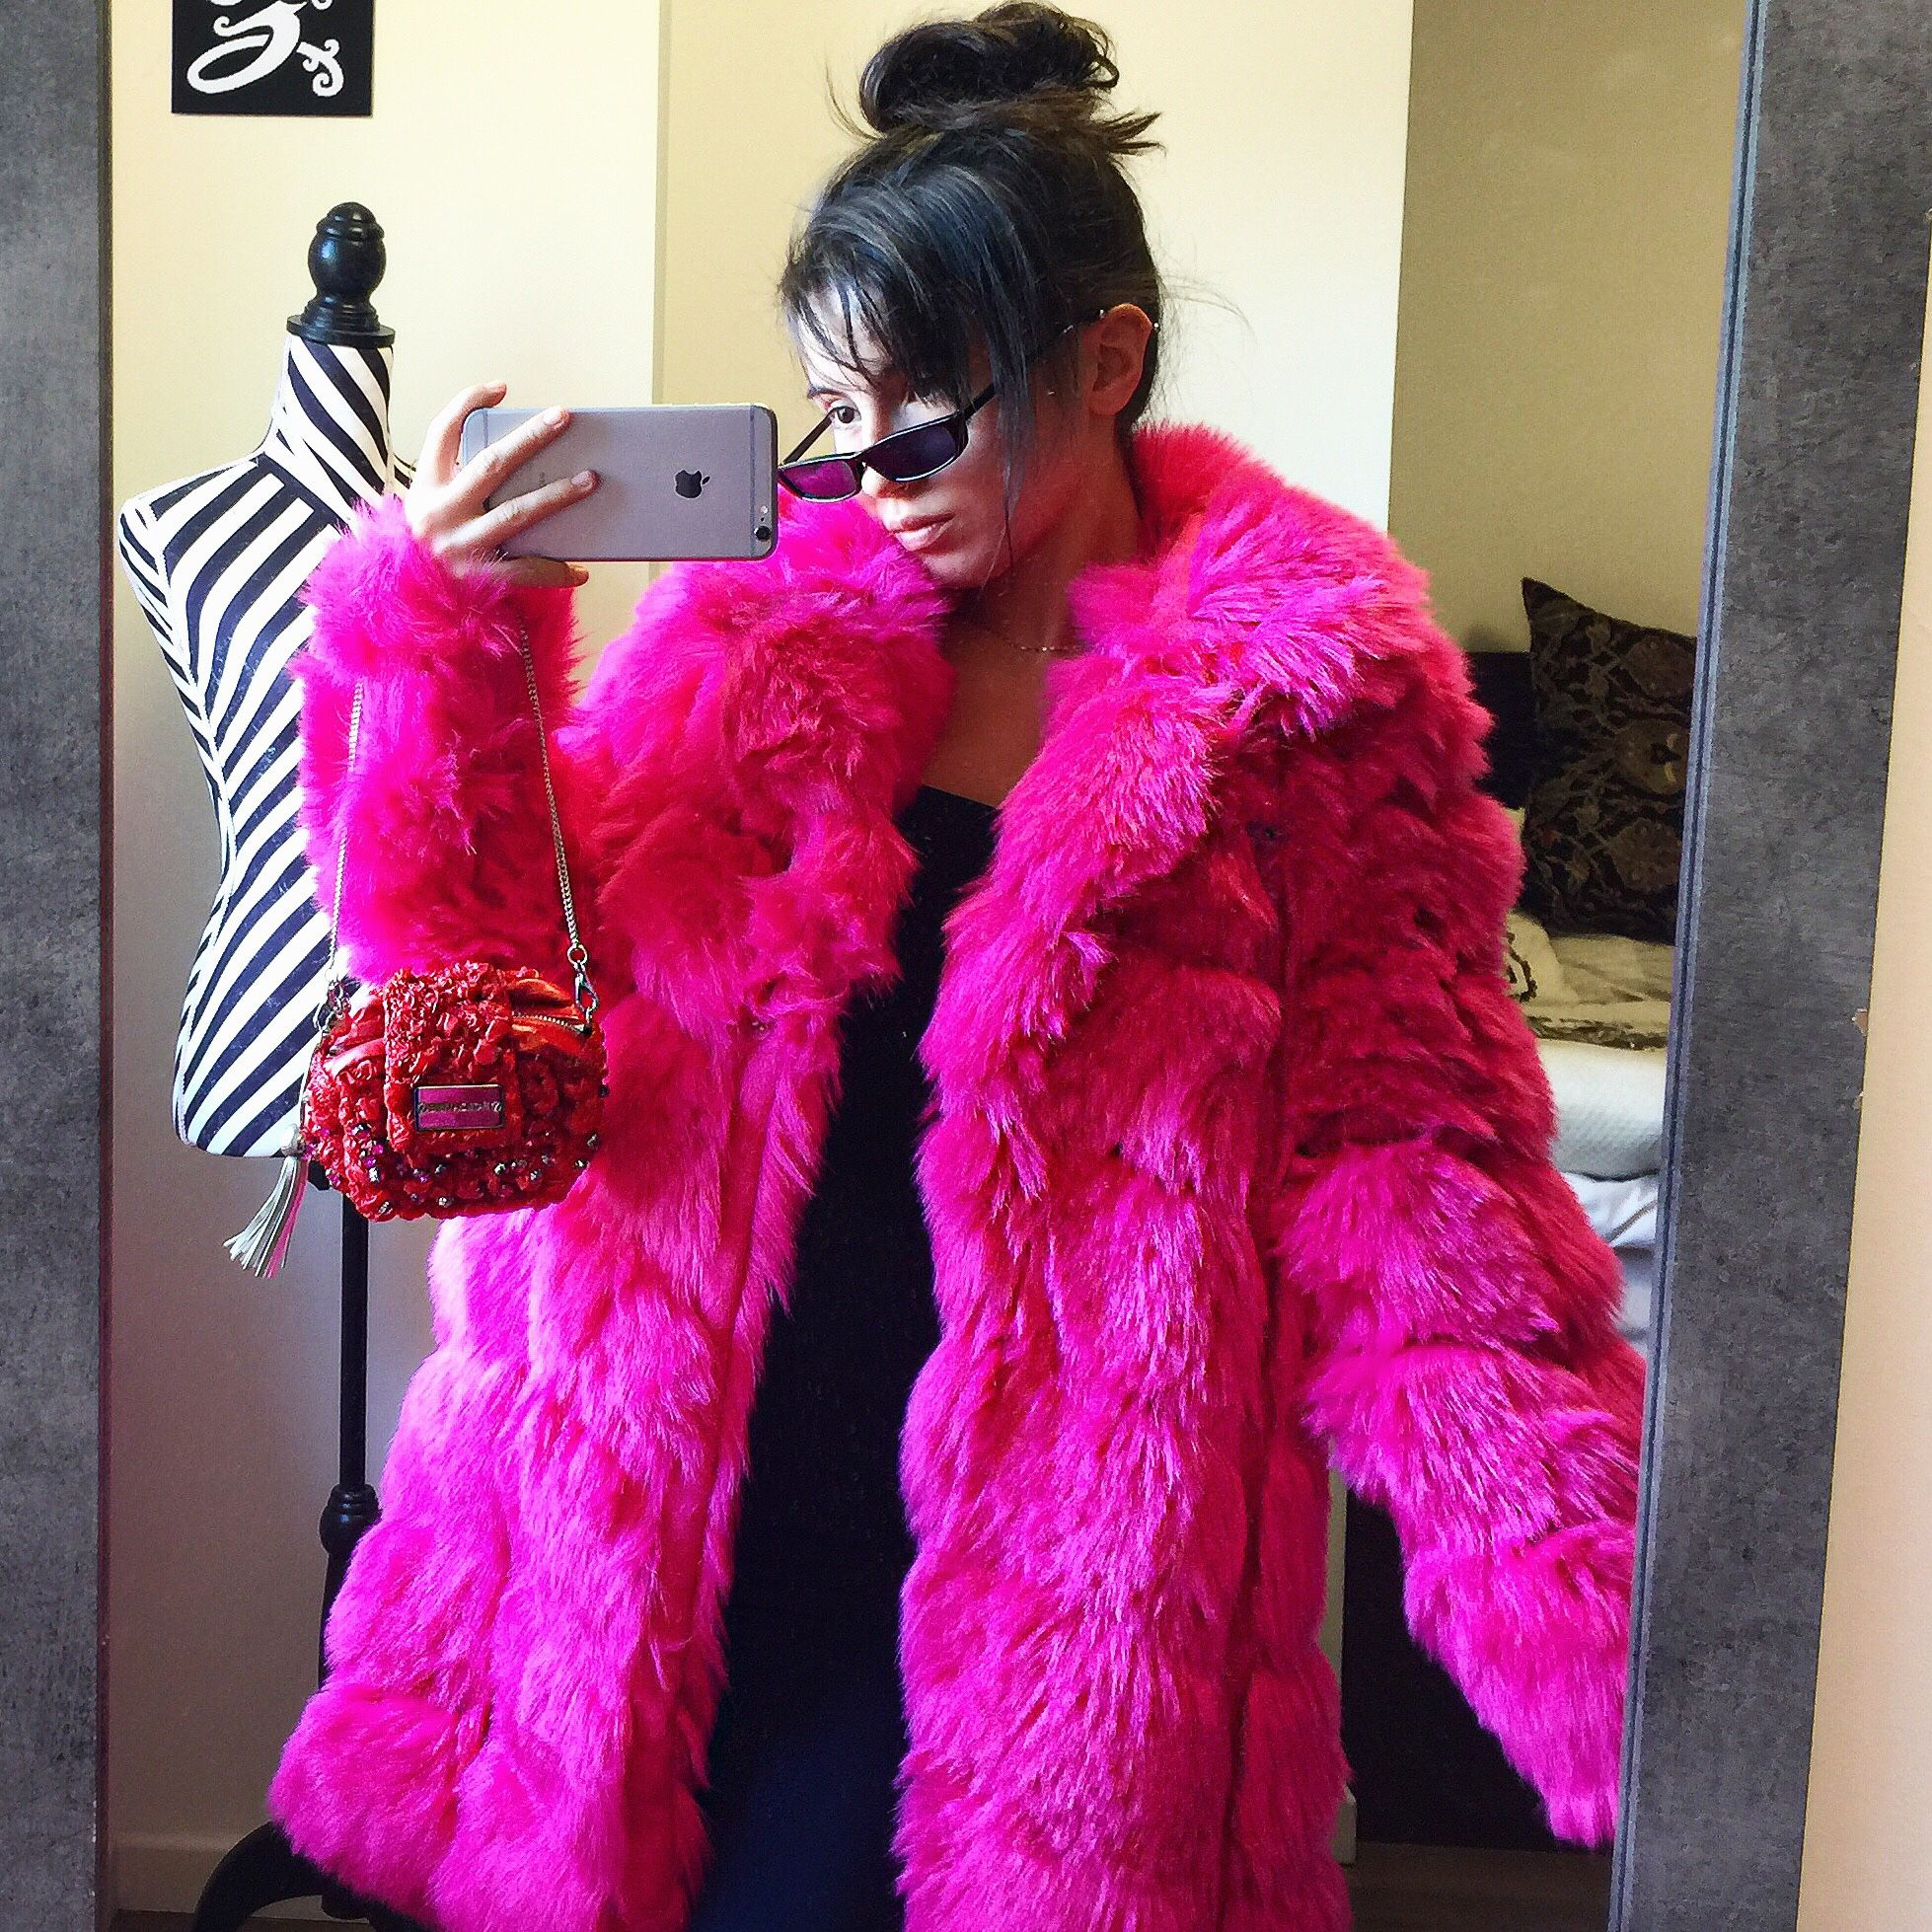 Hot Pink faux fur coat by Missguided size uk 8 in Depop